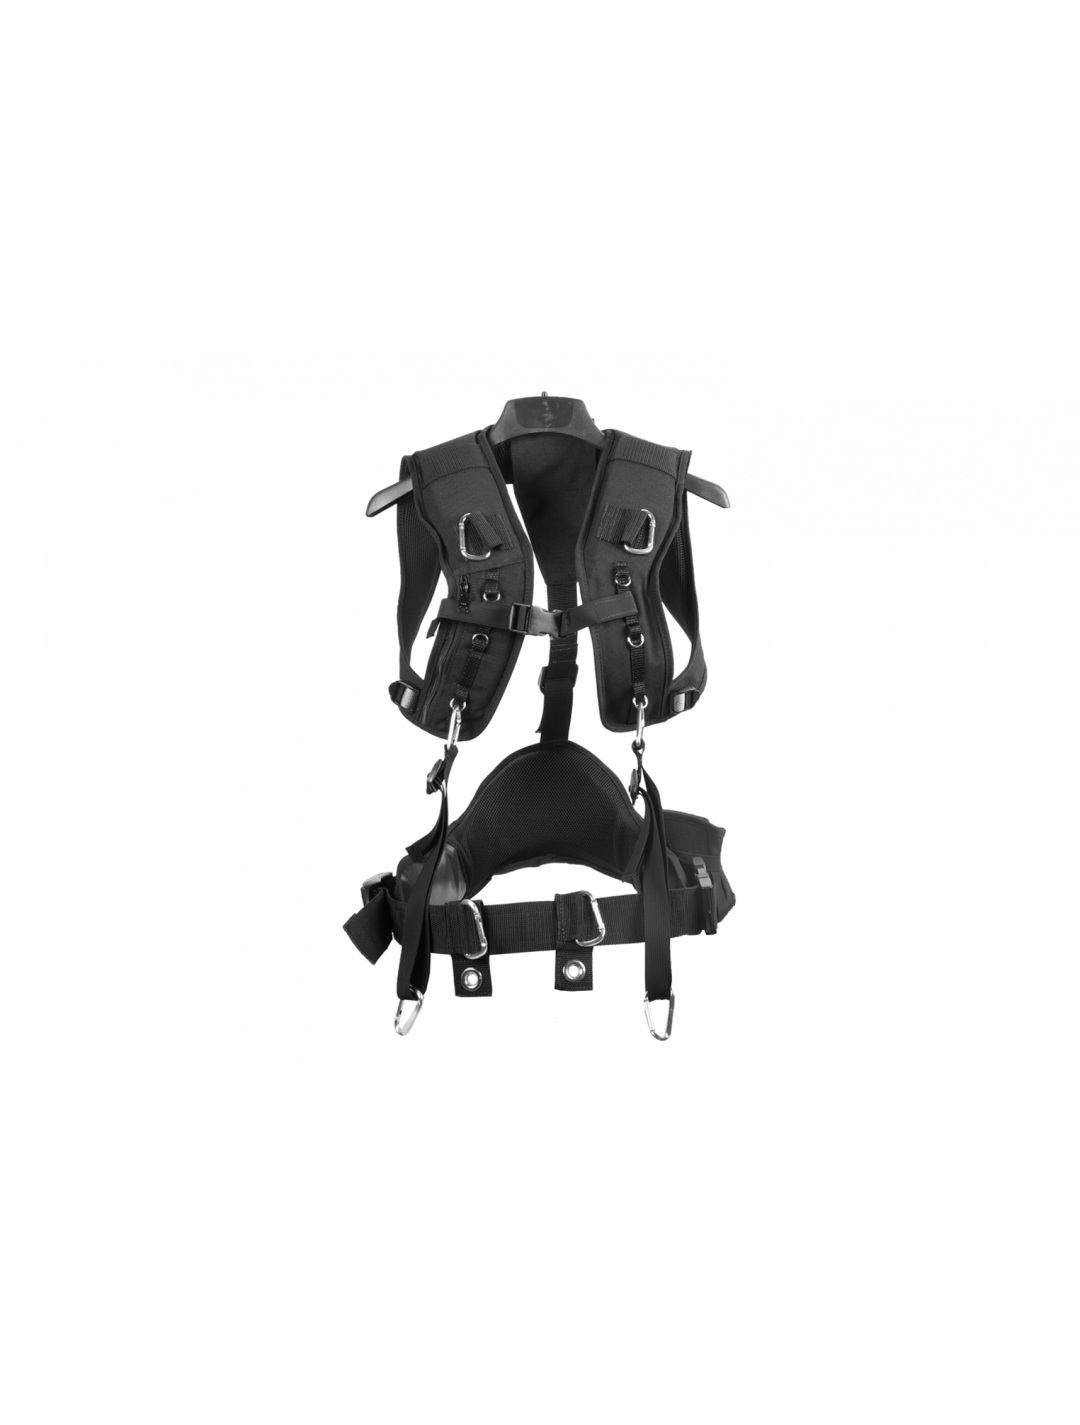 Porta Brace AH-3H-MEMS Audio Harness, Heavy Duty Paddes Straps, Small, Black